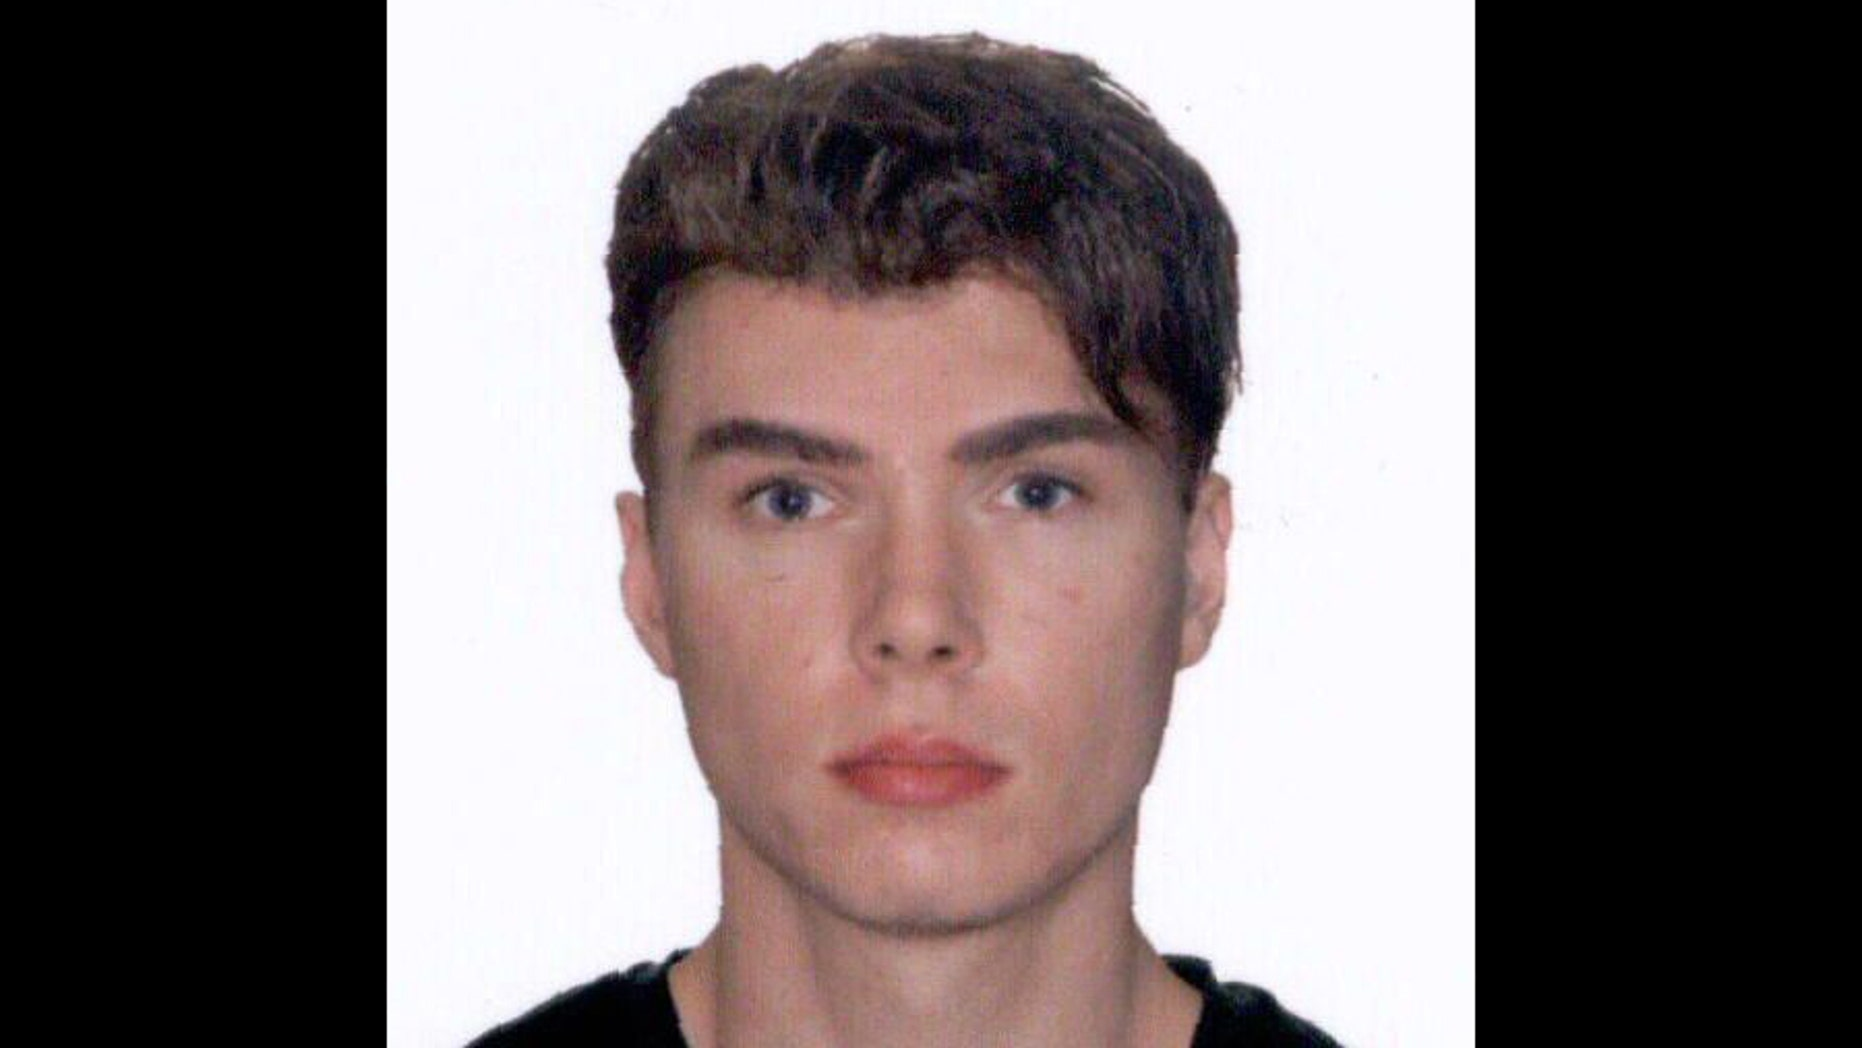 This image provided by Interpol shows an undated photo of Luka Rocco Magnotta, 29 years-old, who is accused of videotaping a gruesome murder before posting it to the internet will be charged with threatening Canada's prime minister after mailing a severed foot to his Conservative party headquarters, police said.